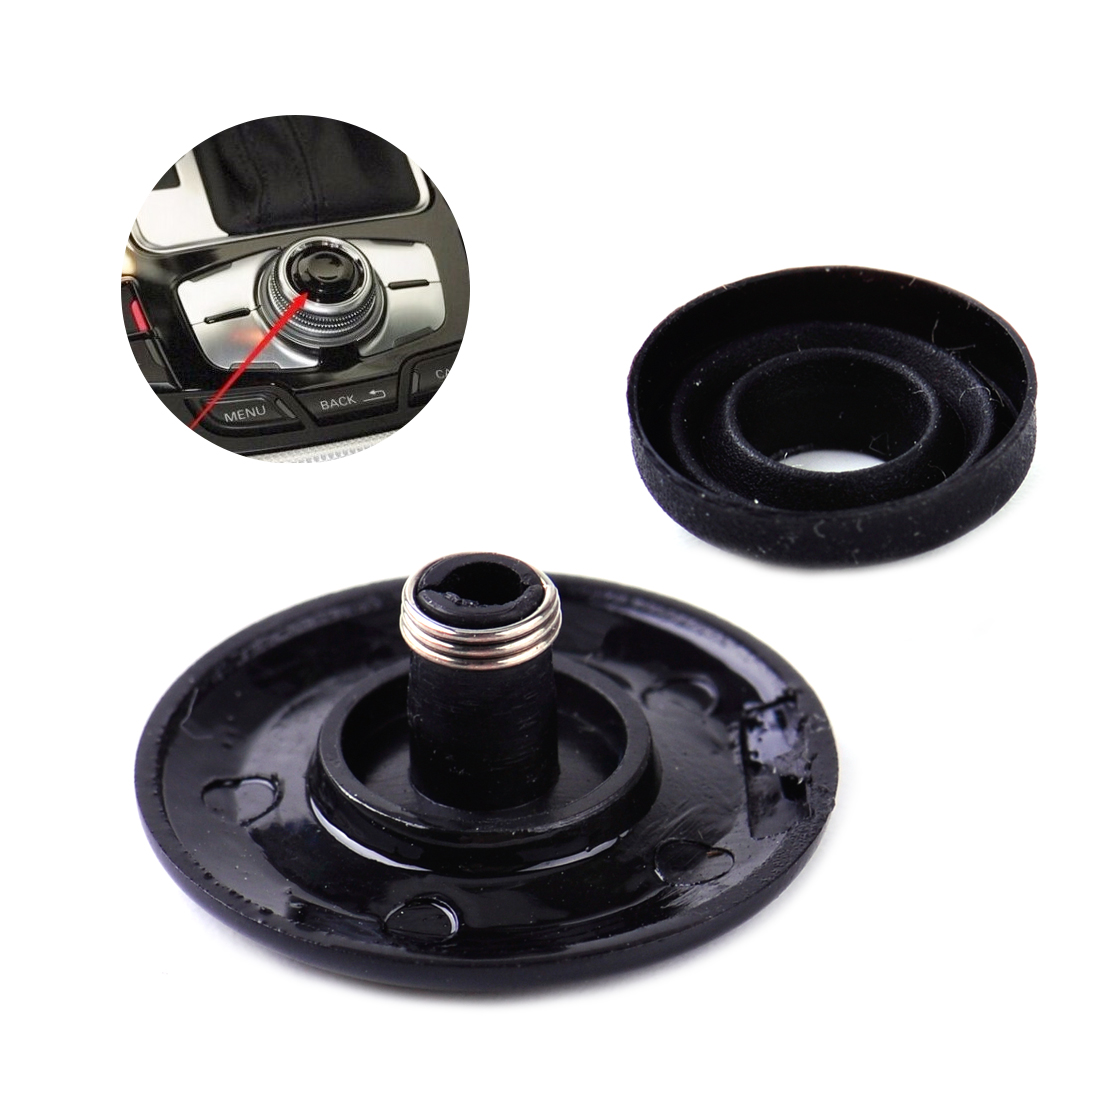 US $5 27 12% OFF|beler MMI Knob Joystick Button Repair Kit 8K0998068  8K0998068A for Audi A4 A5 Q5 Q7 S4 2013 2014 2015 A6 S6 2008 2009 2010  2011-in